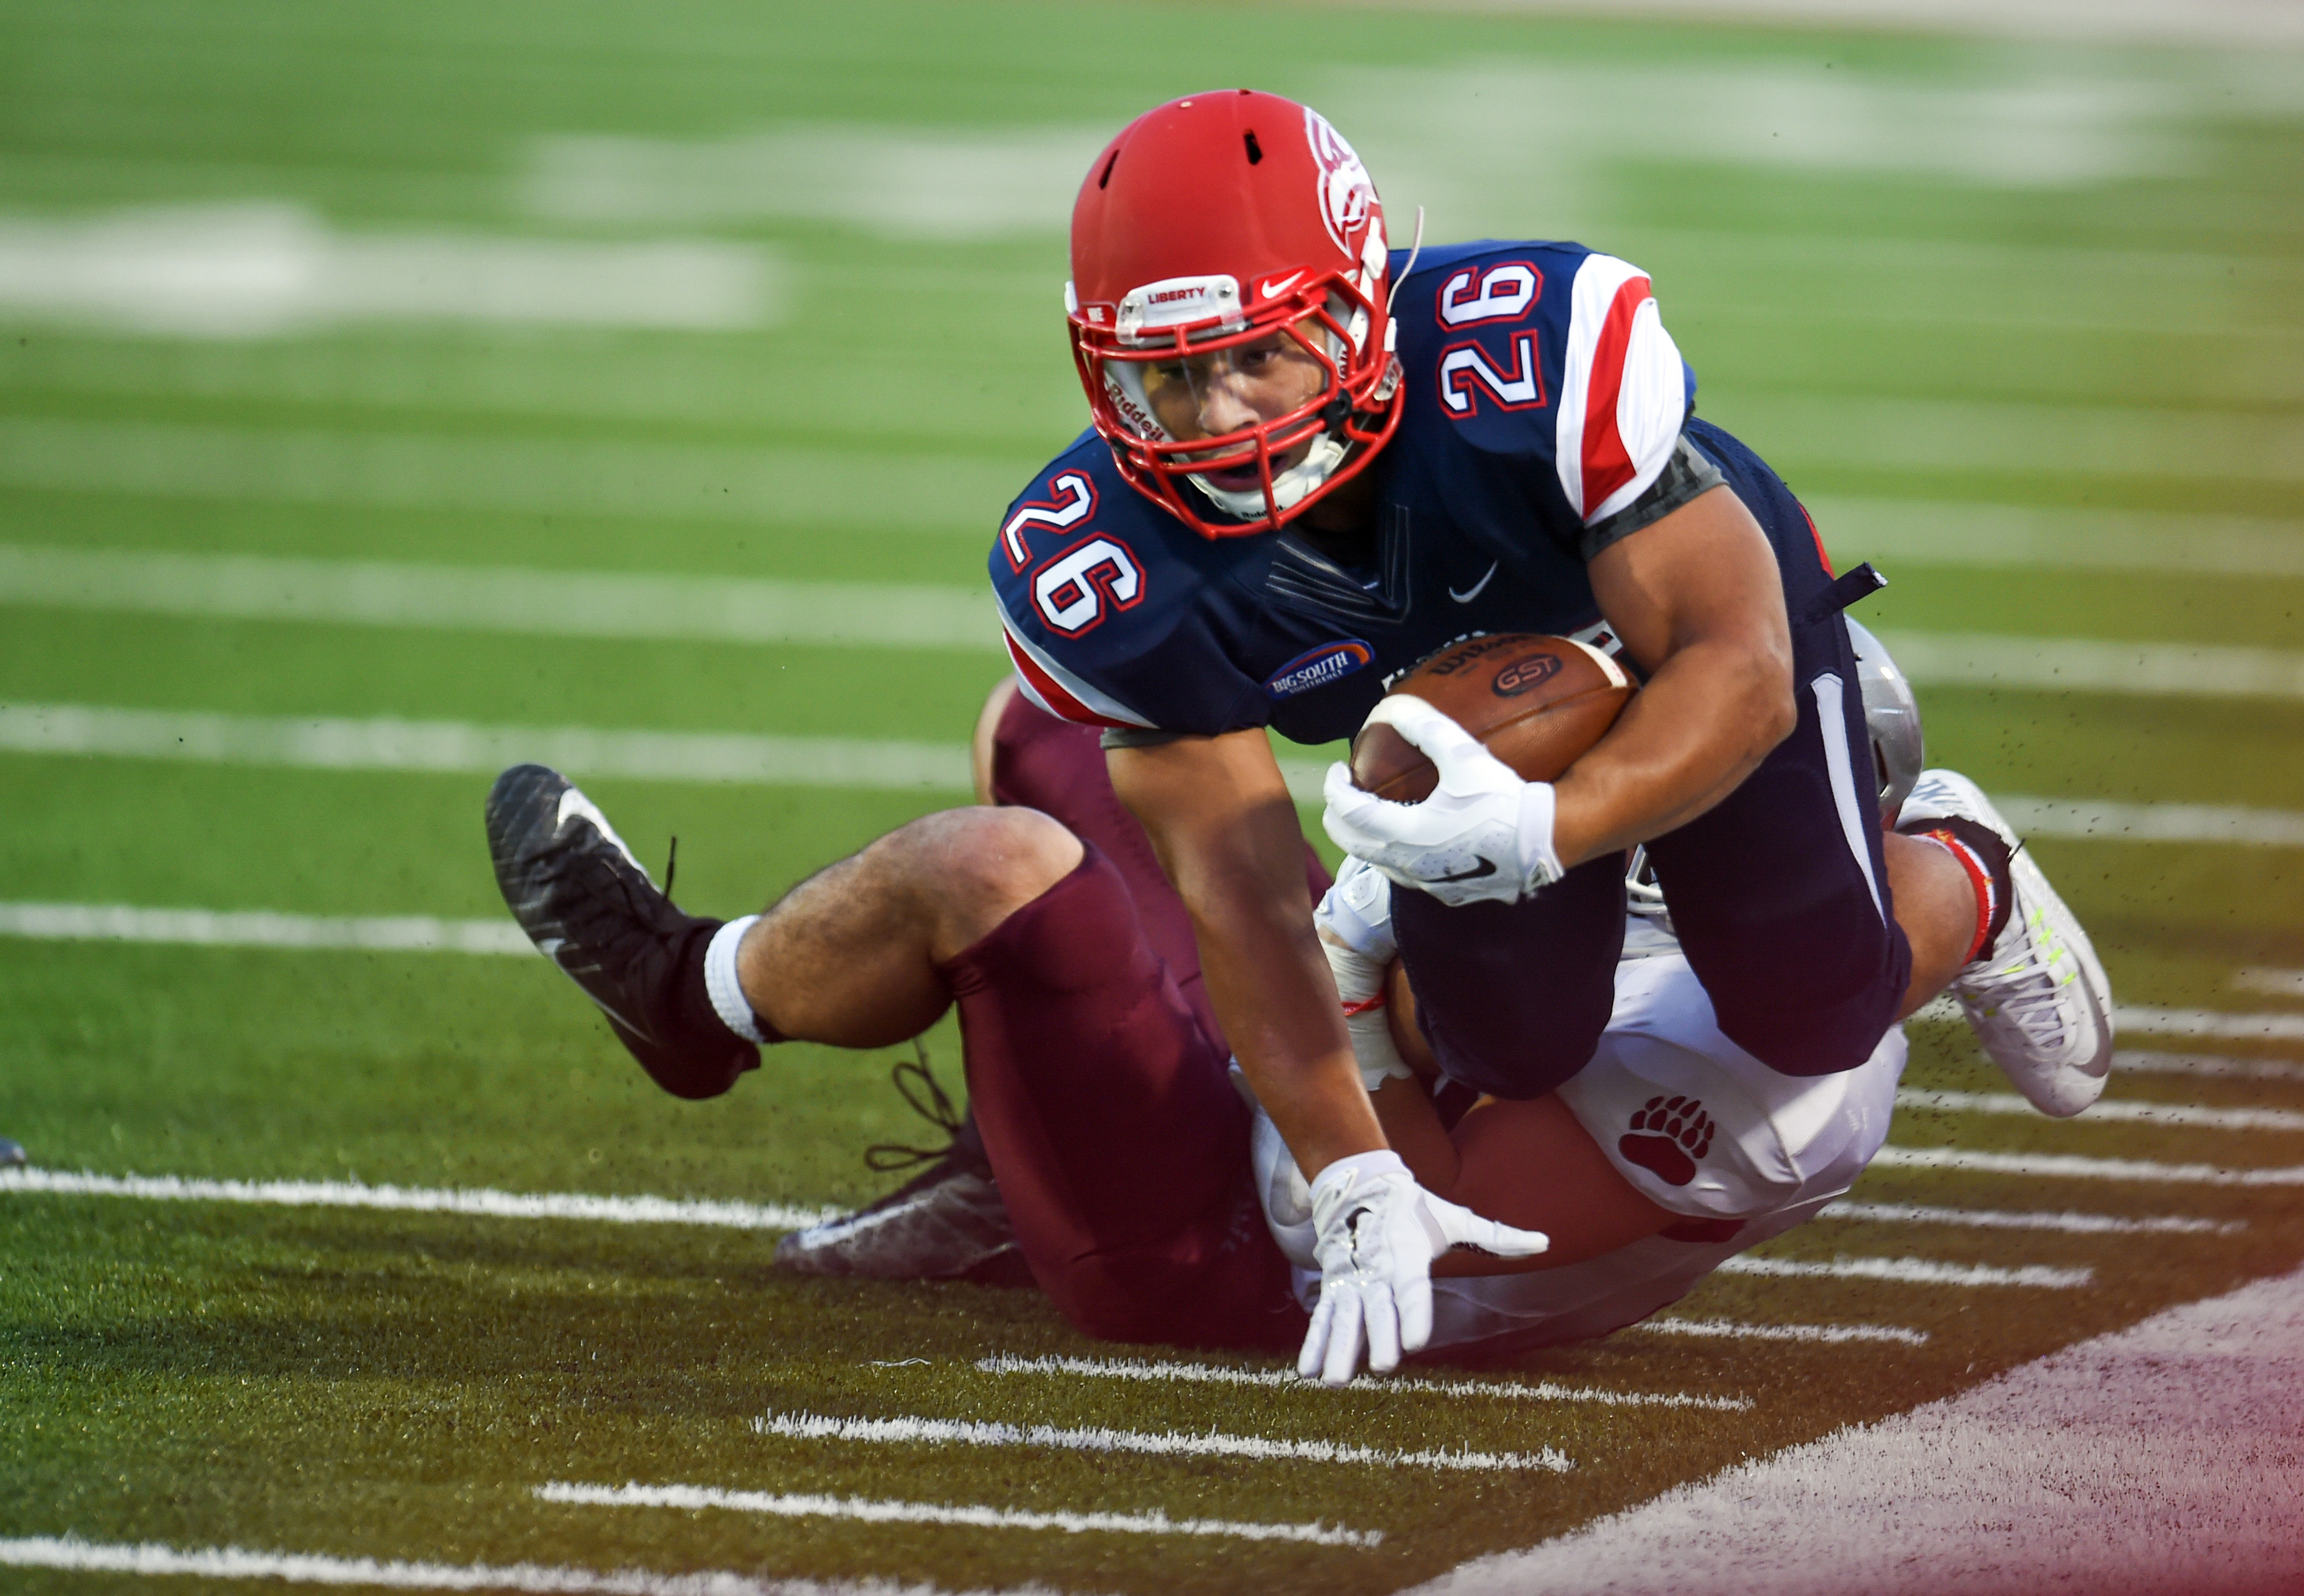 Liberty University running back Desmond Rice dives for a first down during an NCAA college football game against Montana, Saturday, Sept. 19, 2015, in Lynchburg, Va.  (AP Photo/Lee Luther Jr.)